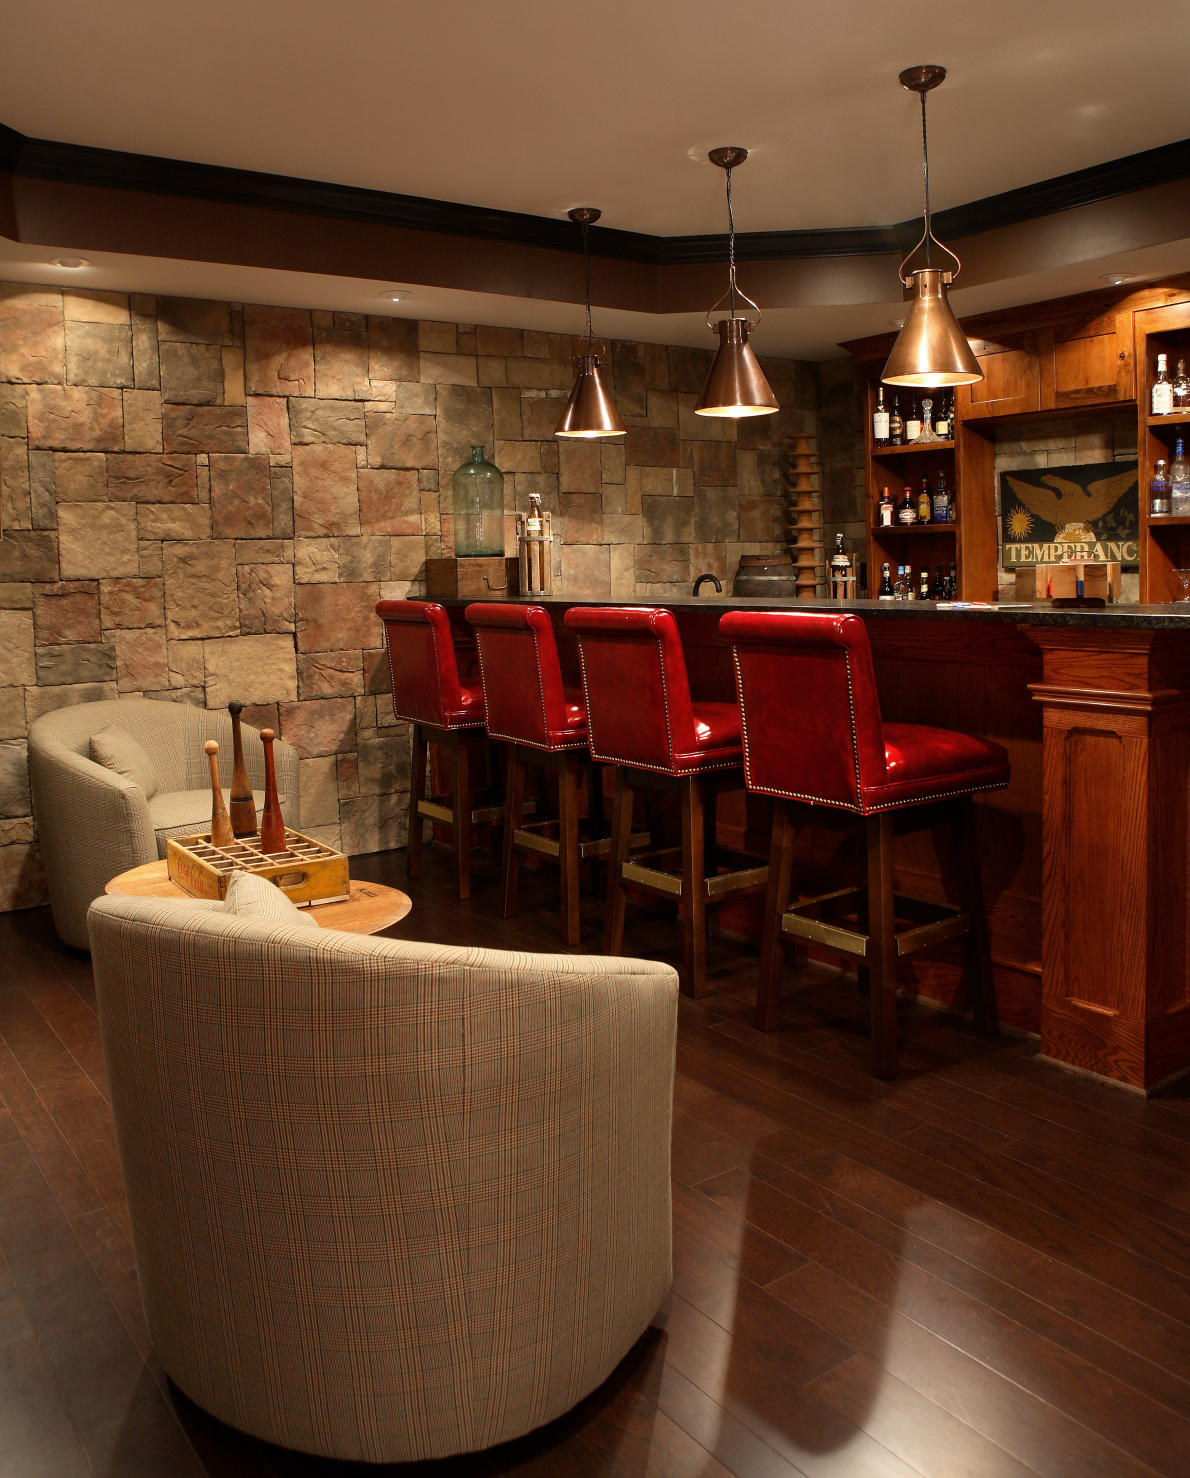 Man Cave Drinks Bar : Man cave ideas for your ultimate home redecoration